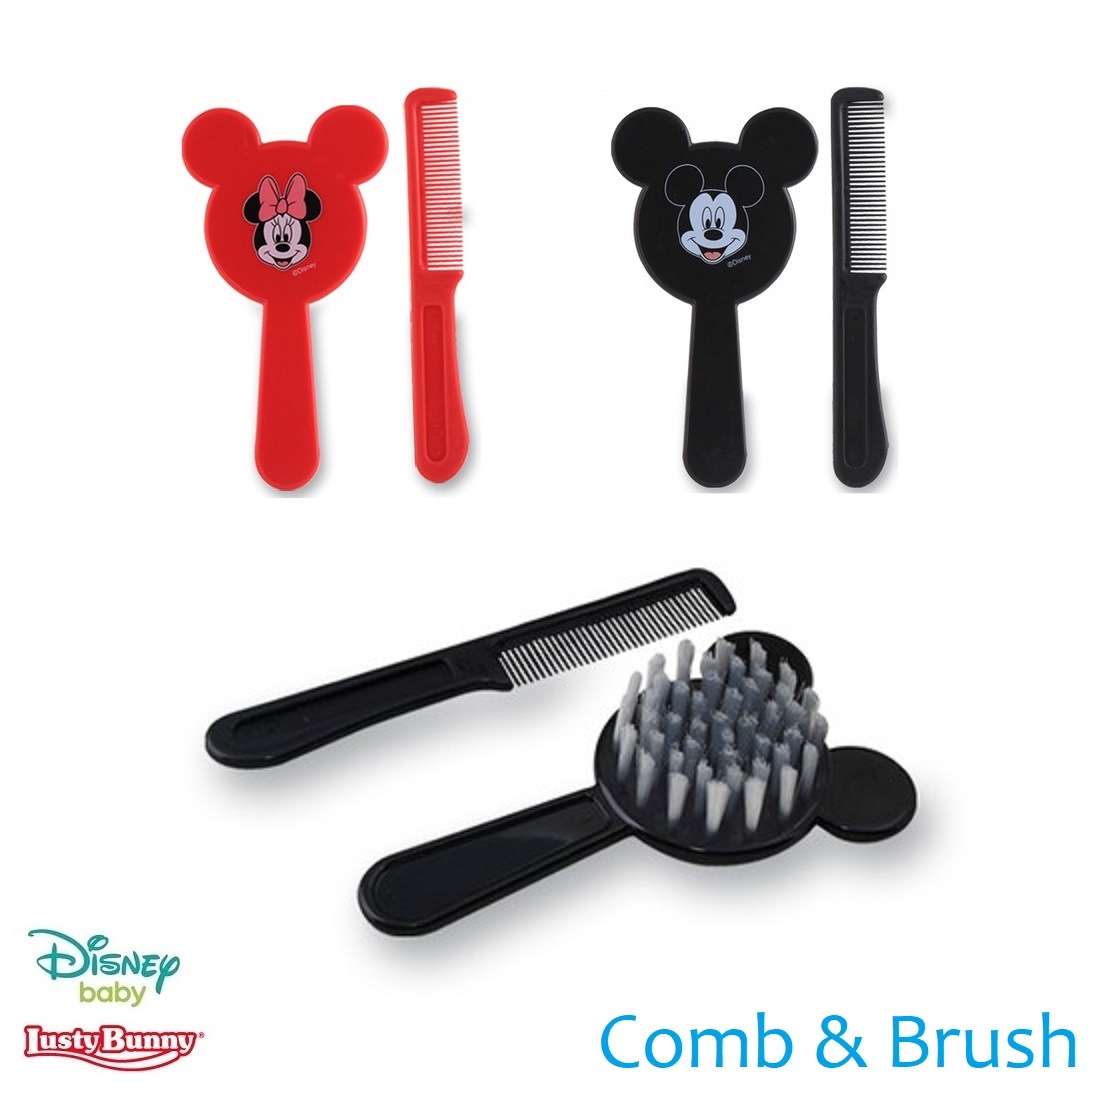 Lusty Bunny Disney Brush and Comb Set